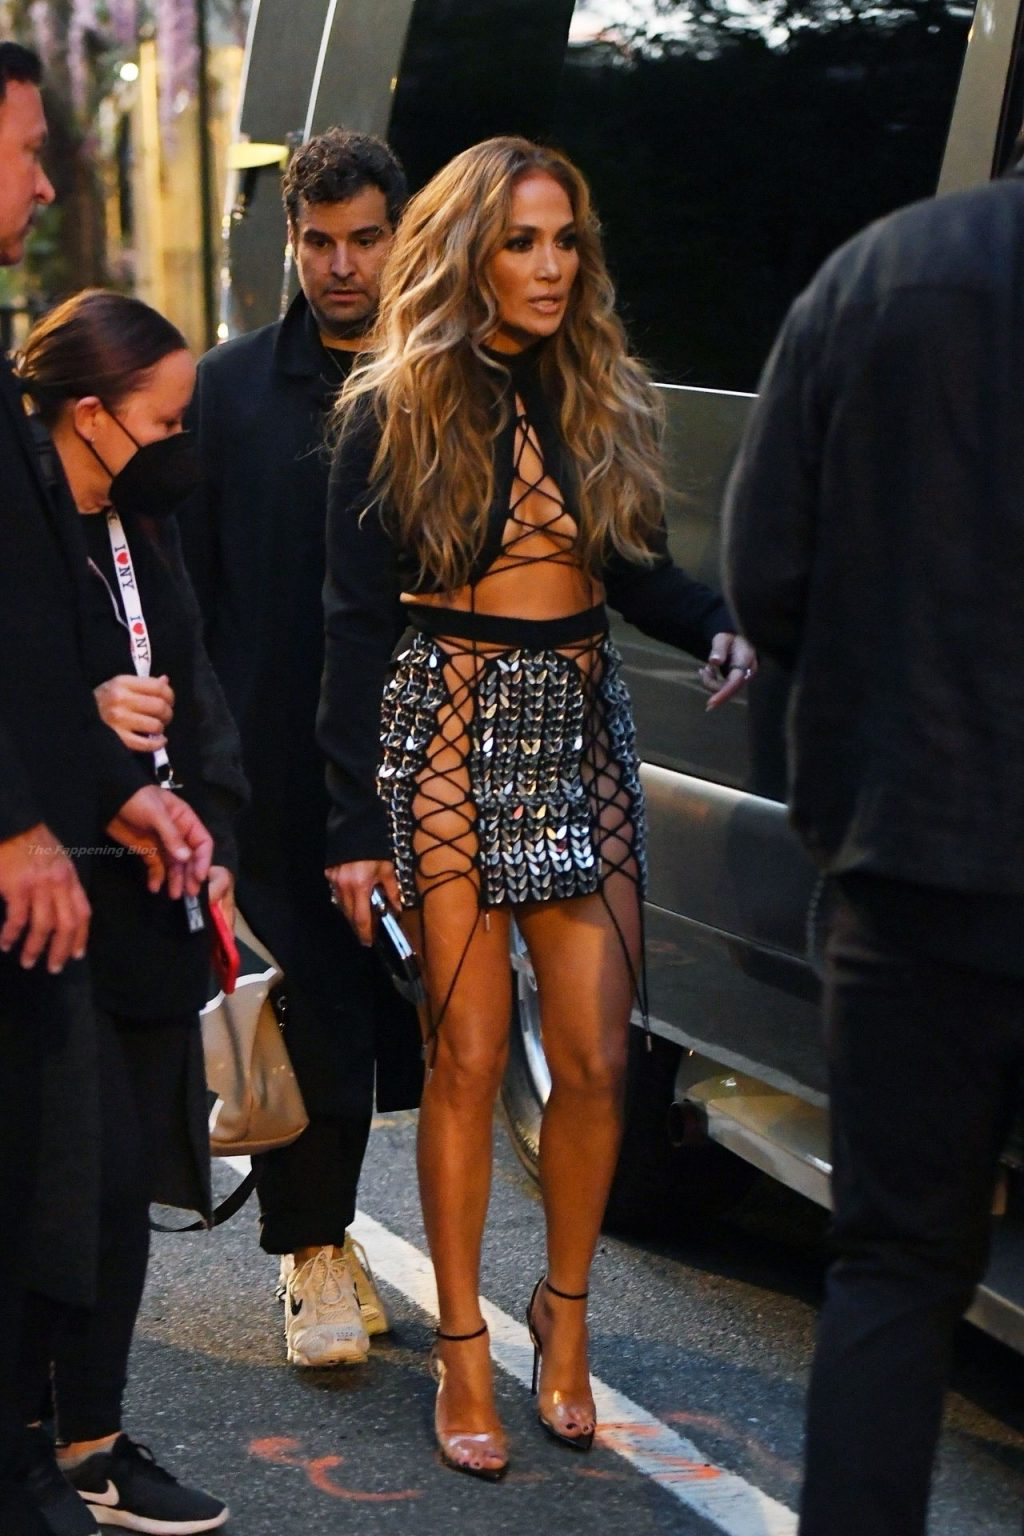 Jennifer Lopez Wears Sexy Lace-Up Skirt to the VMA's (39 Photos)